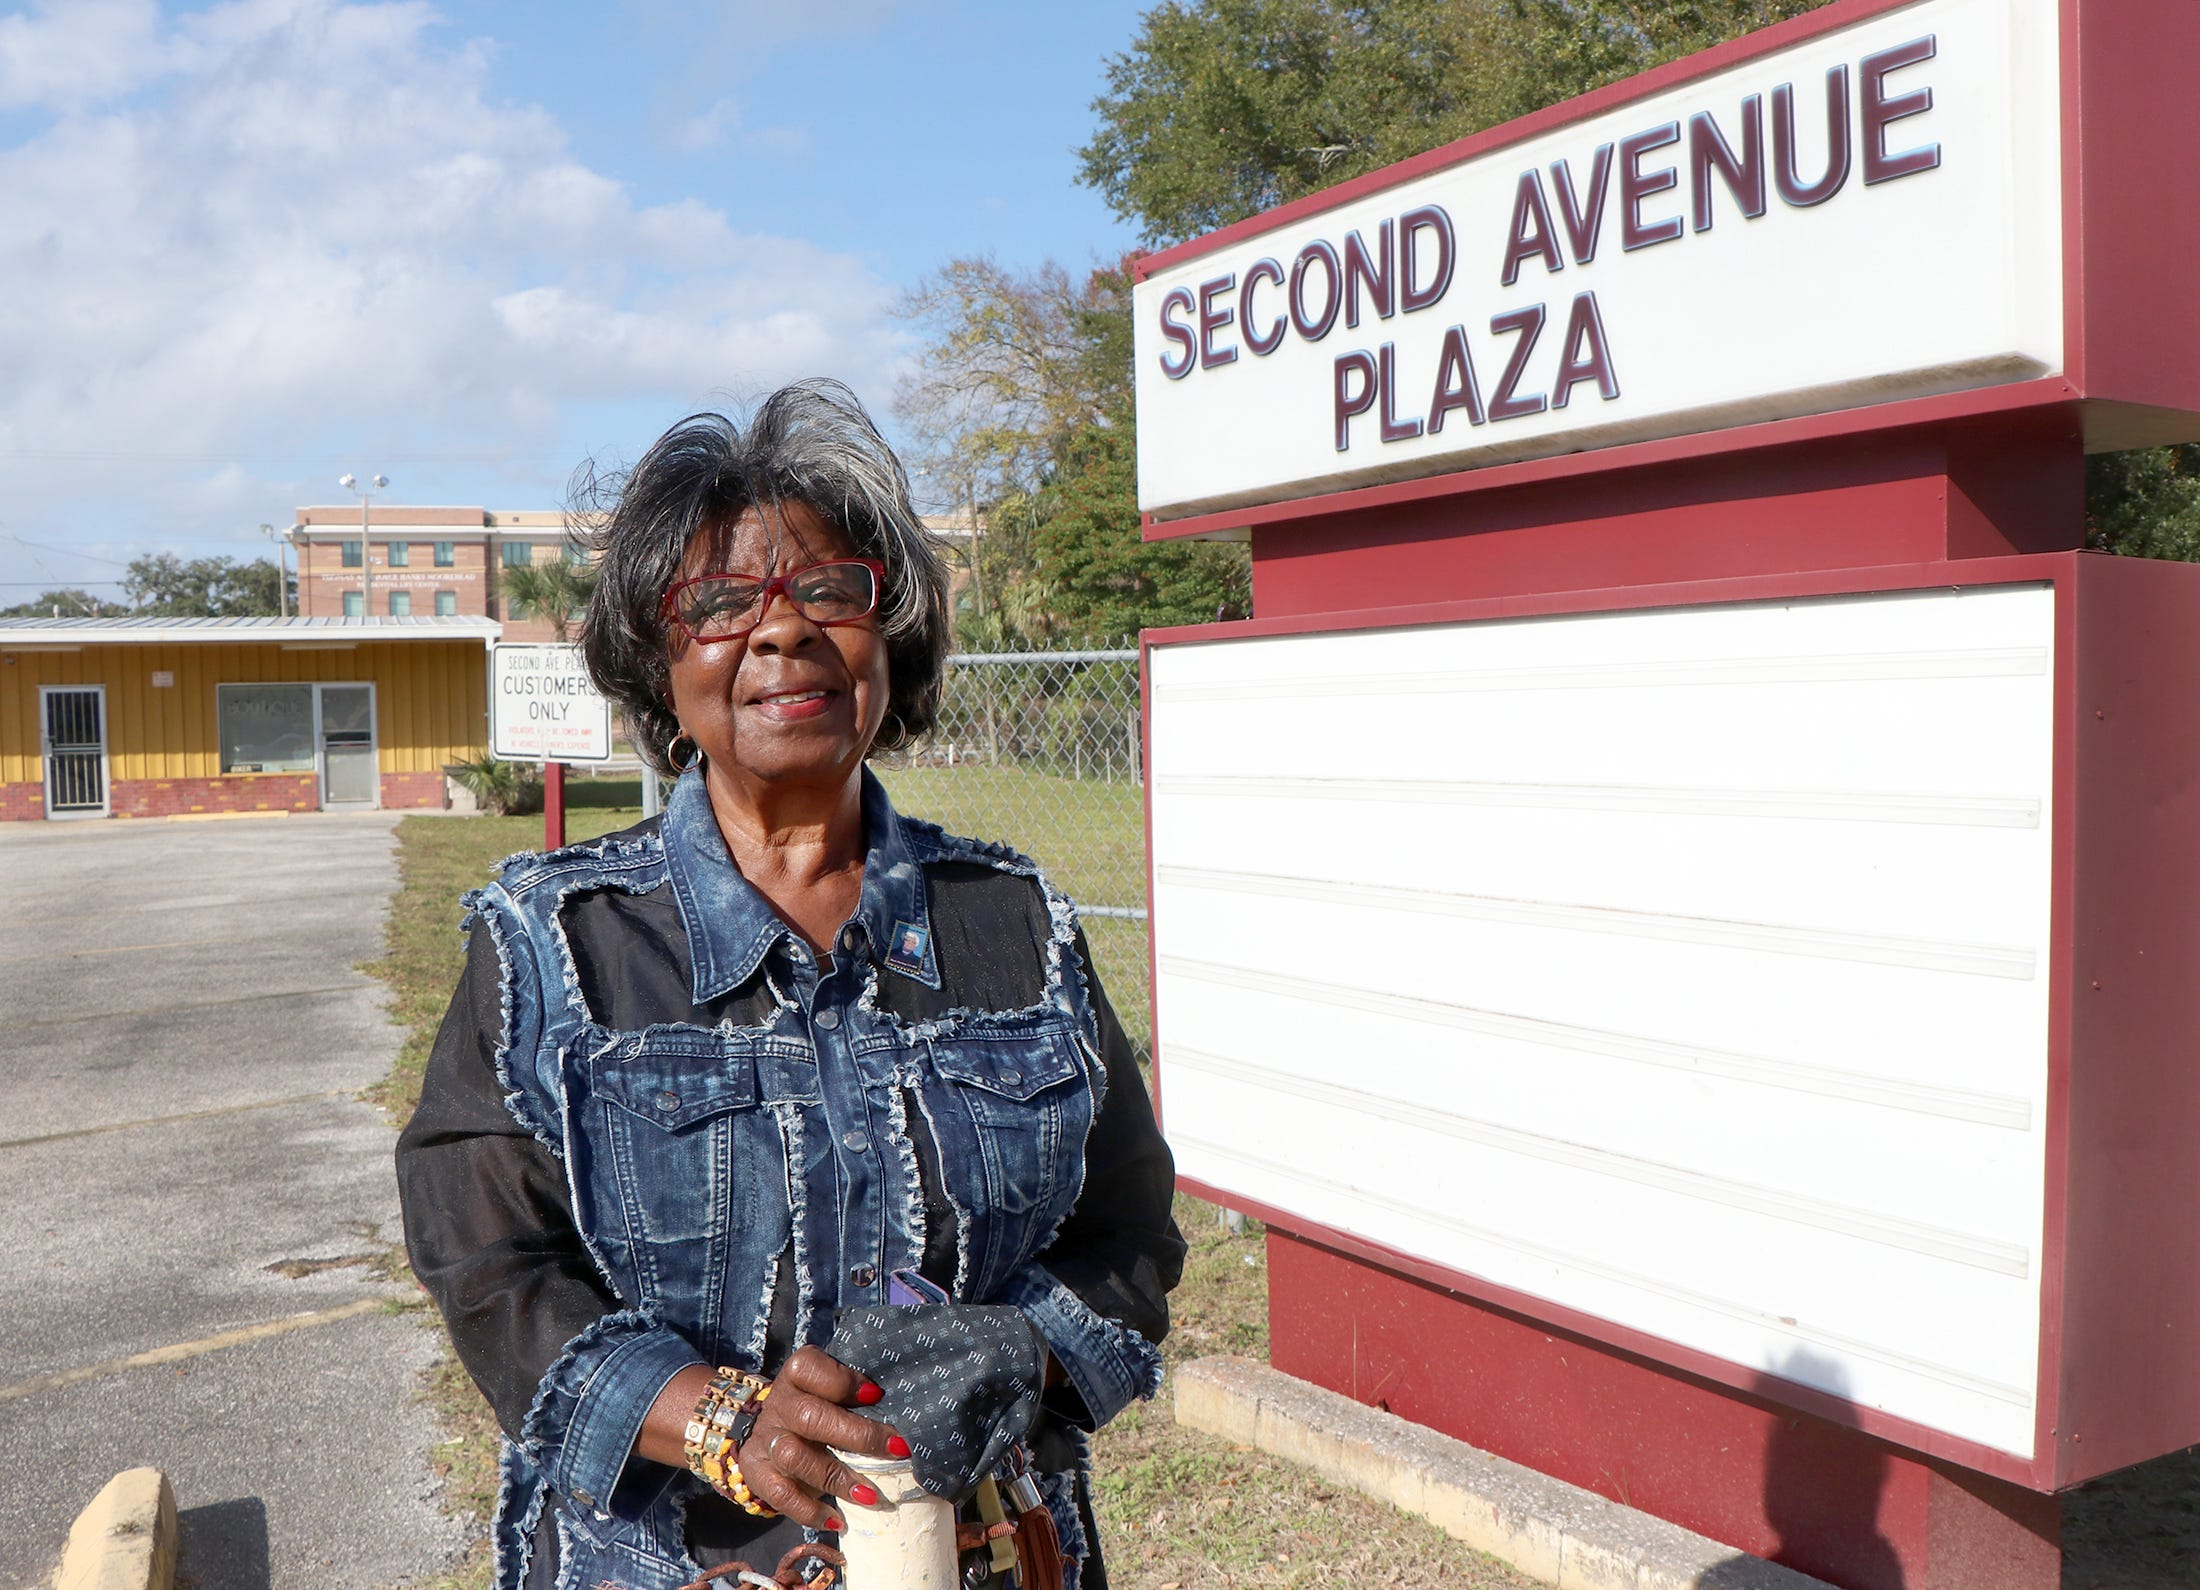 Patricia Heard, owner of the Second Avenue Plaza on Mary McLeod Bethune Boulevard, hopes to see the corridor improved and restored to something closer to what she remembers from her years growing up in the neighborhood when the street thrived.